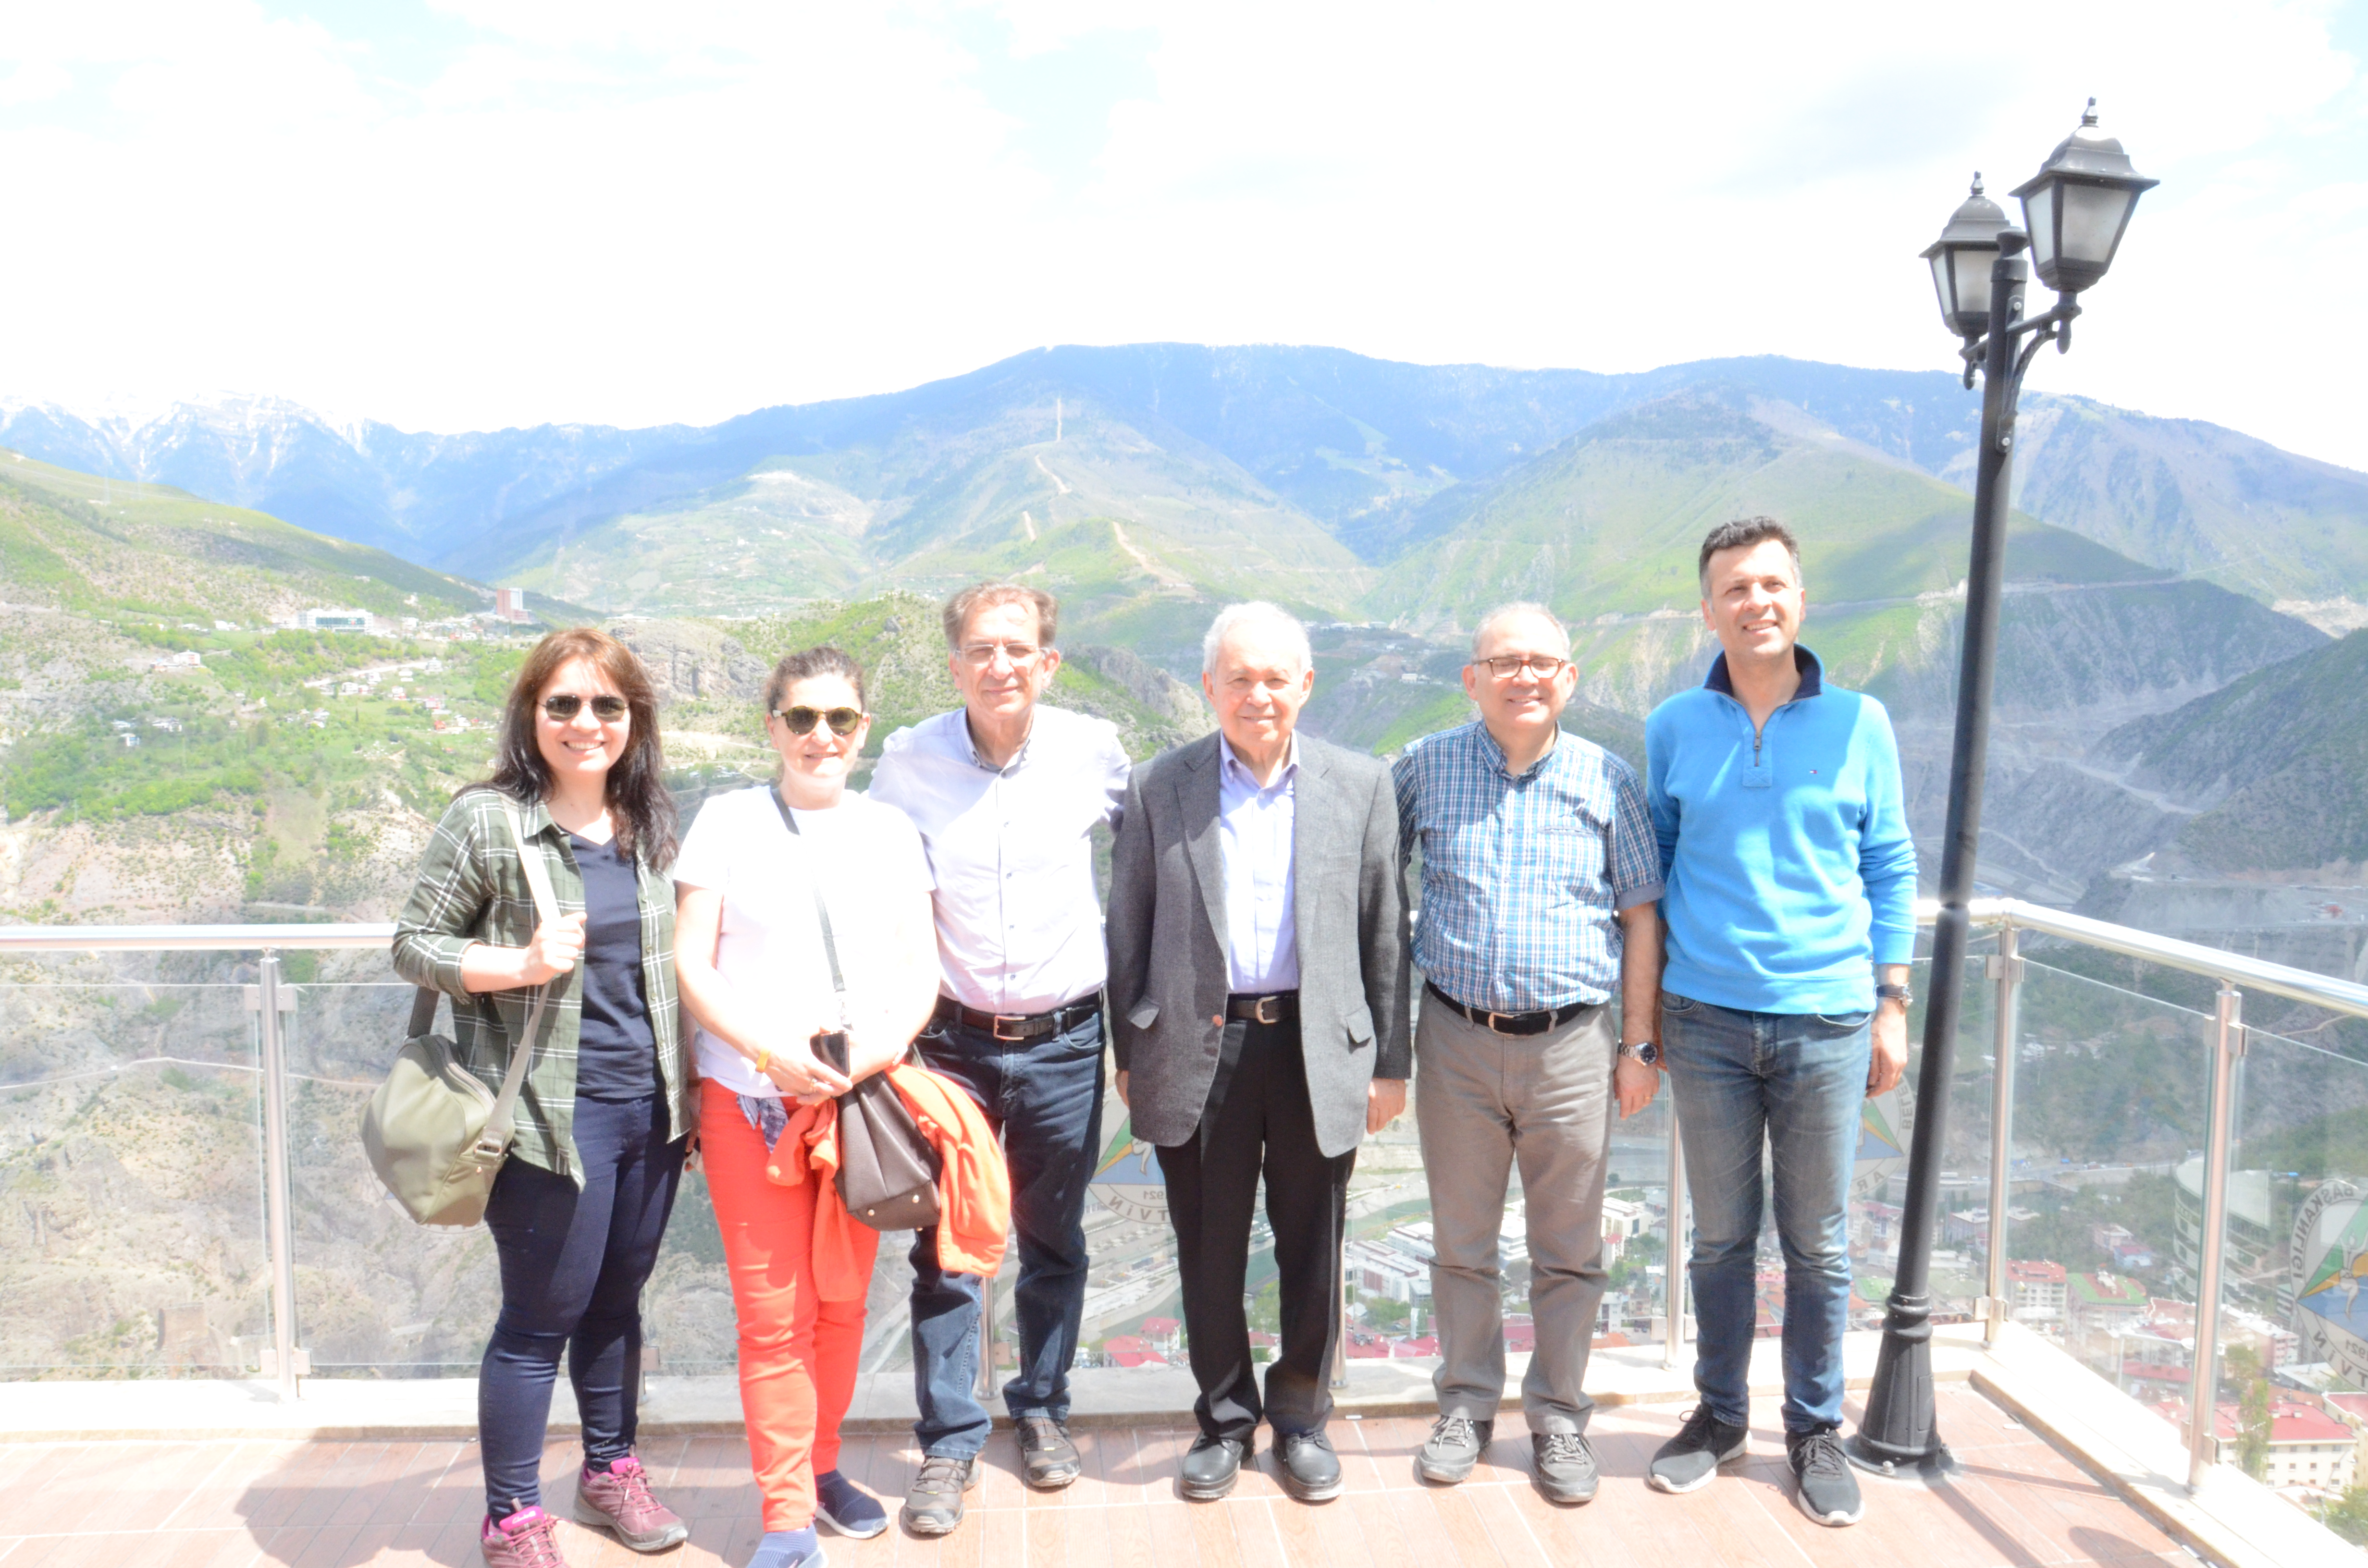 Yusufeli Dam Construction Site and Deriner Dam were visited with a